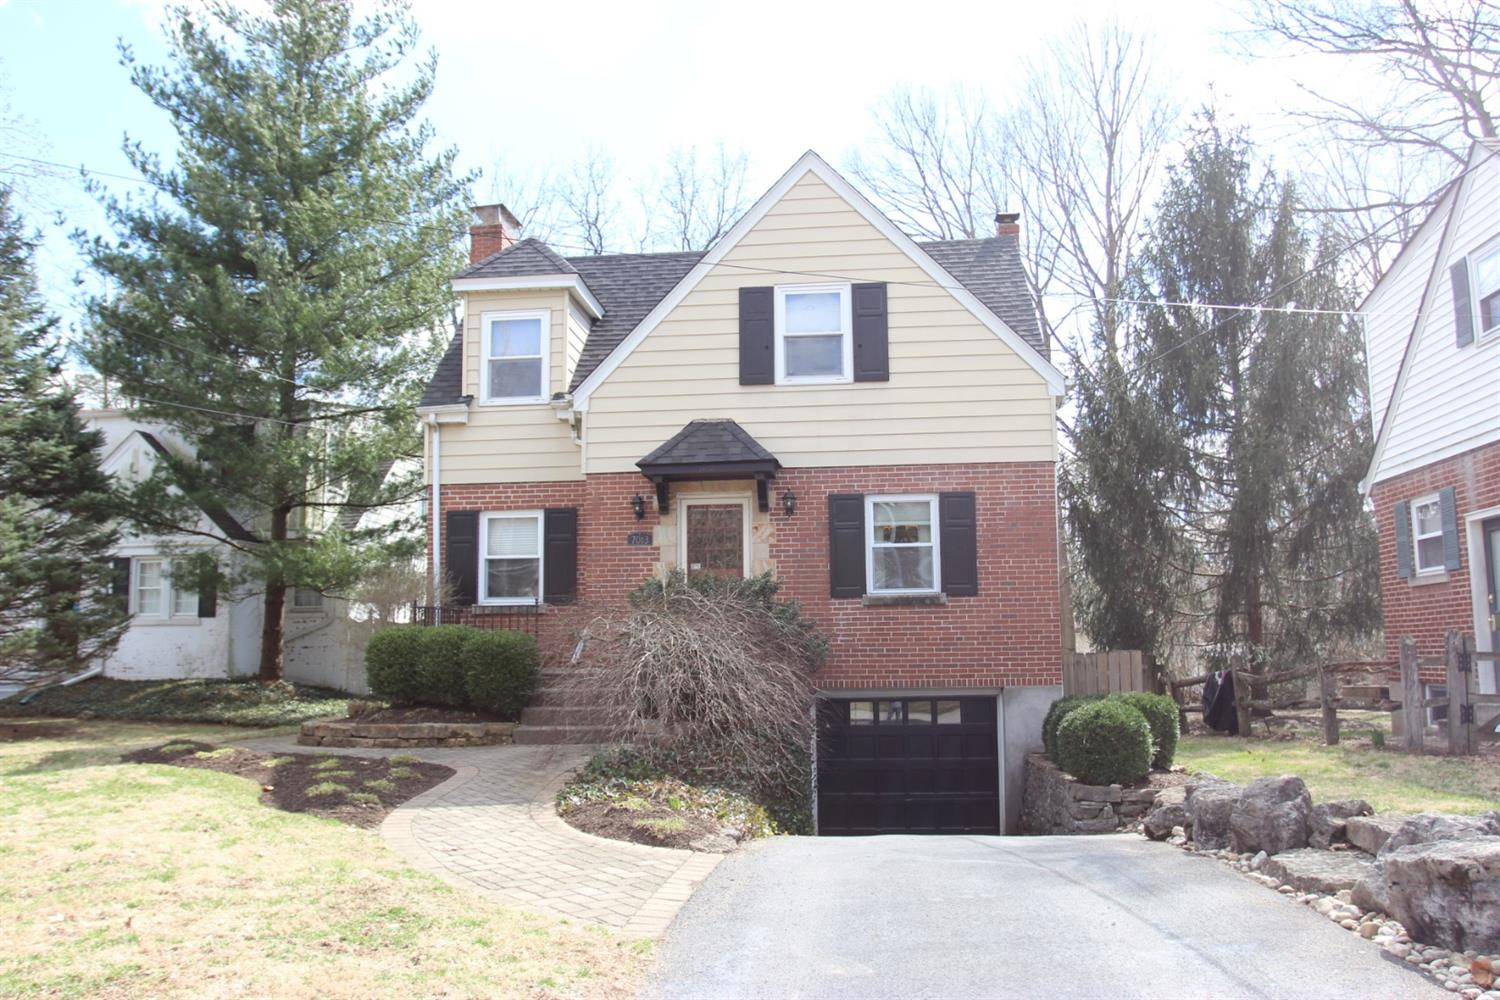 Property for sale at 7013 Rembold Avenue, Mariemont,  Ohio 45227